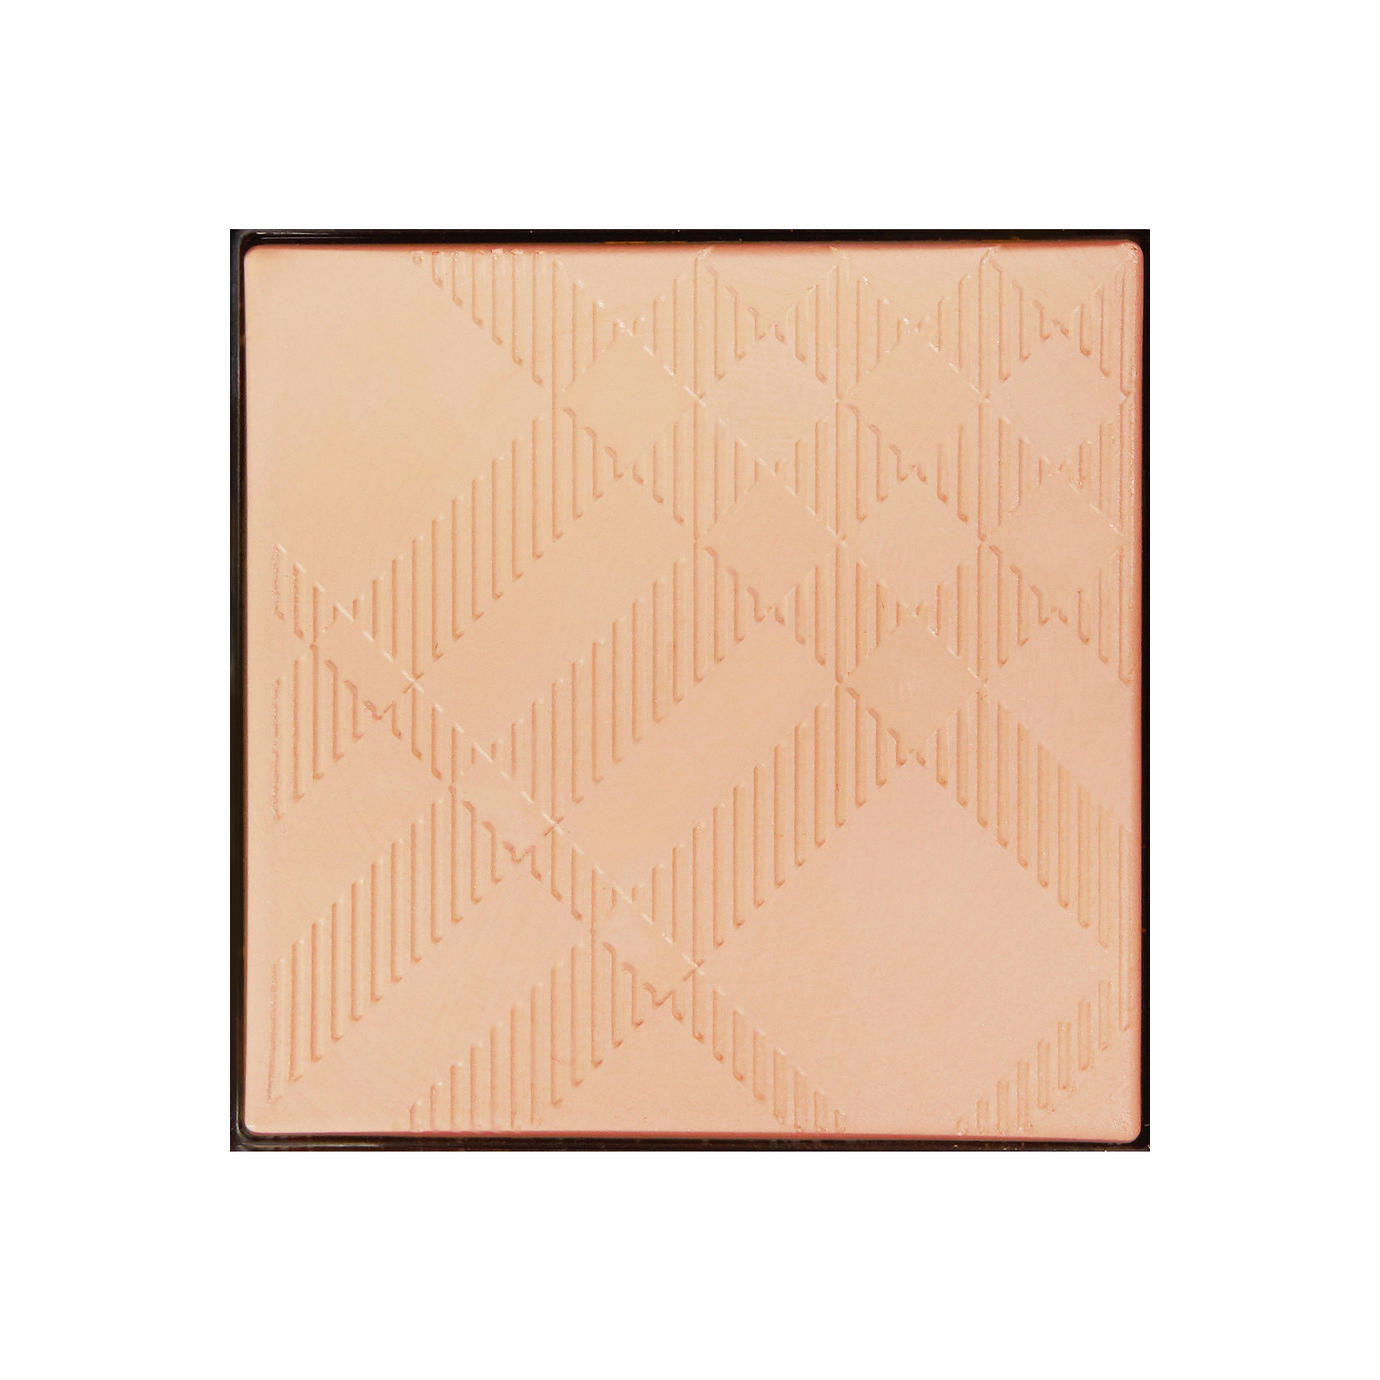 Burberry Nude Powder Sheer Luminous Pressed Powder Porcelain No.11 Refill